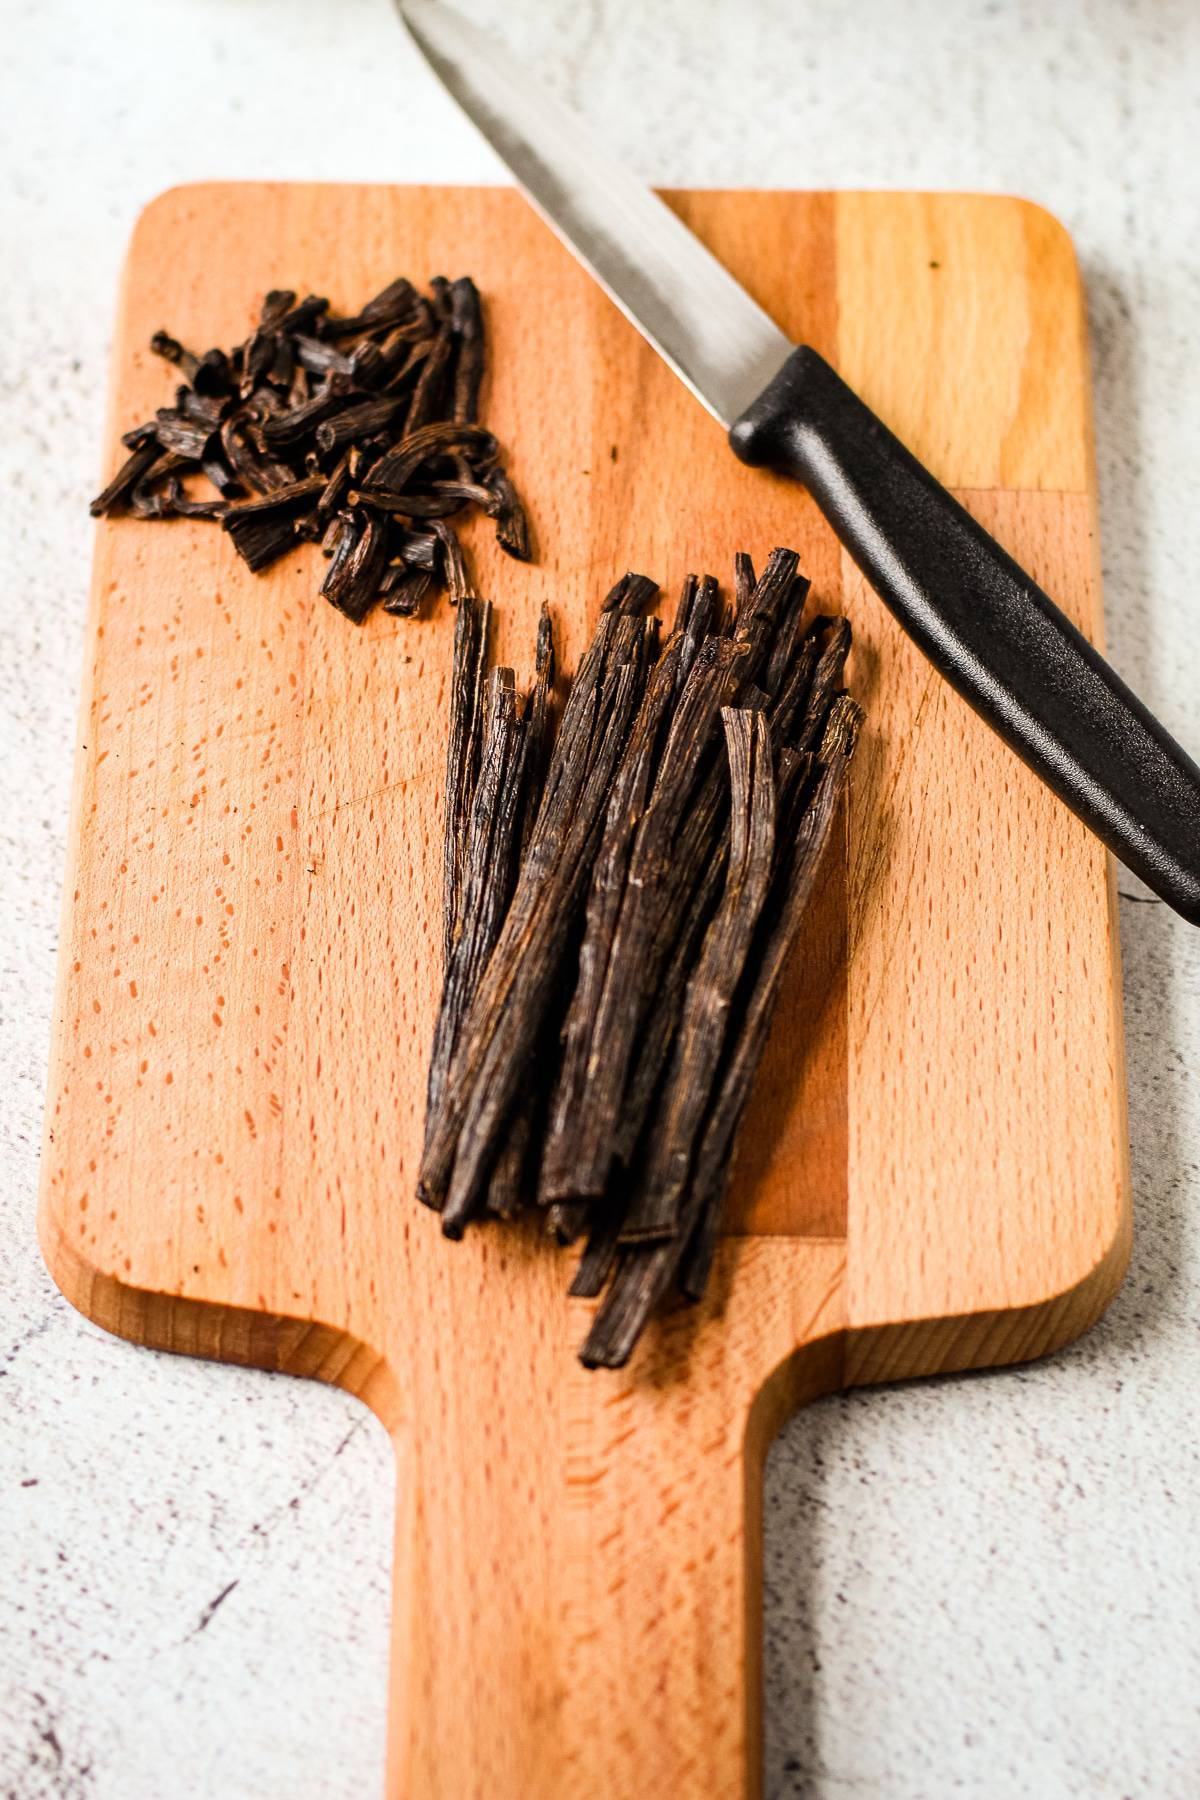 Cut vanilla beans on a cutting board.